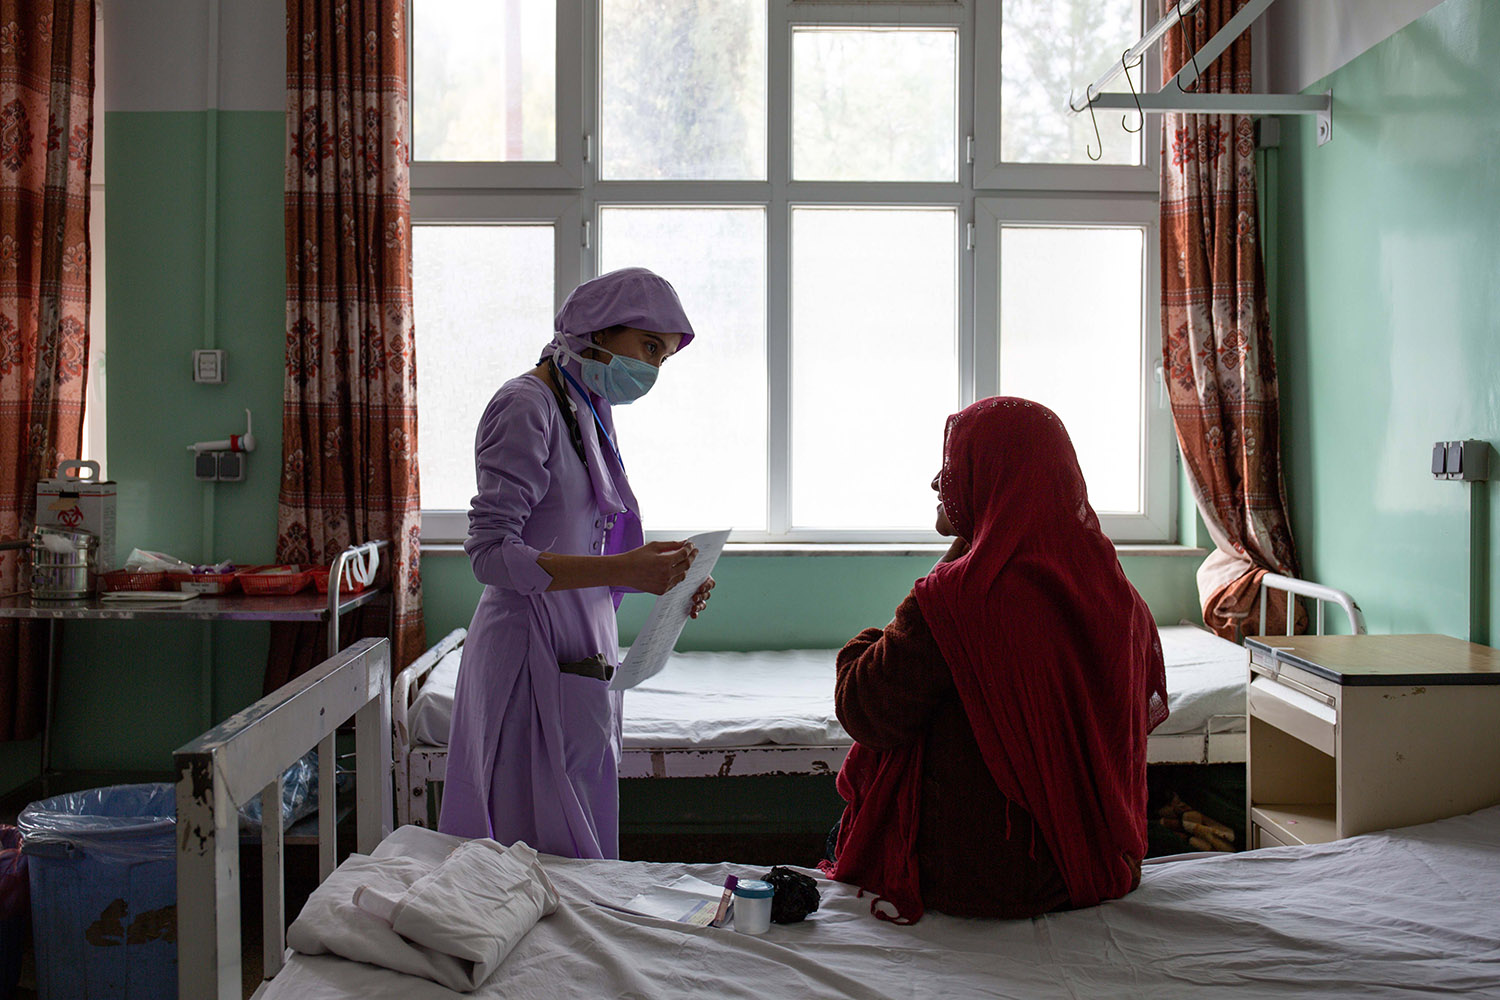 A midwife in training attends to one of the first patients of the day in the labor ward at Mirwais Hospital on Feb. 18.